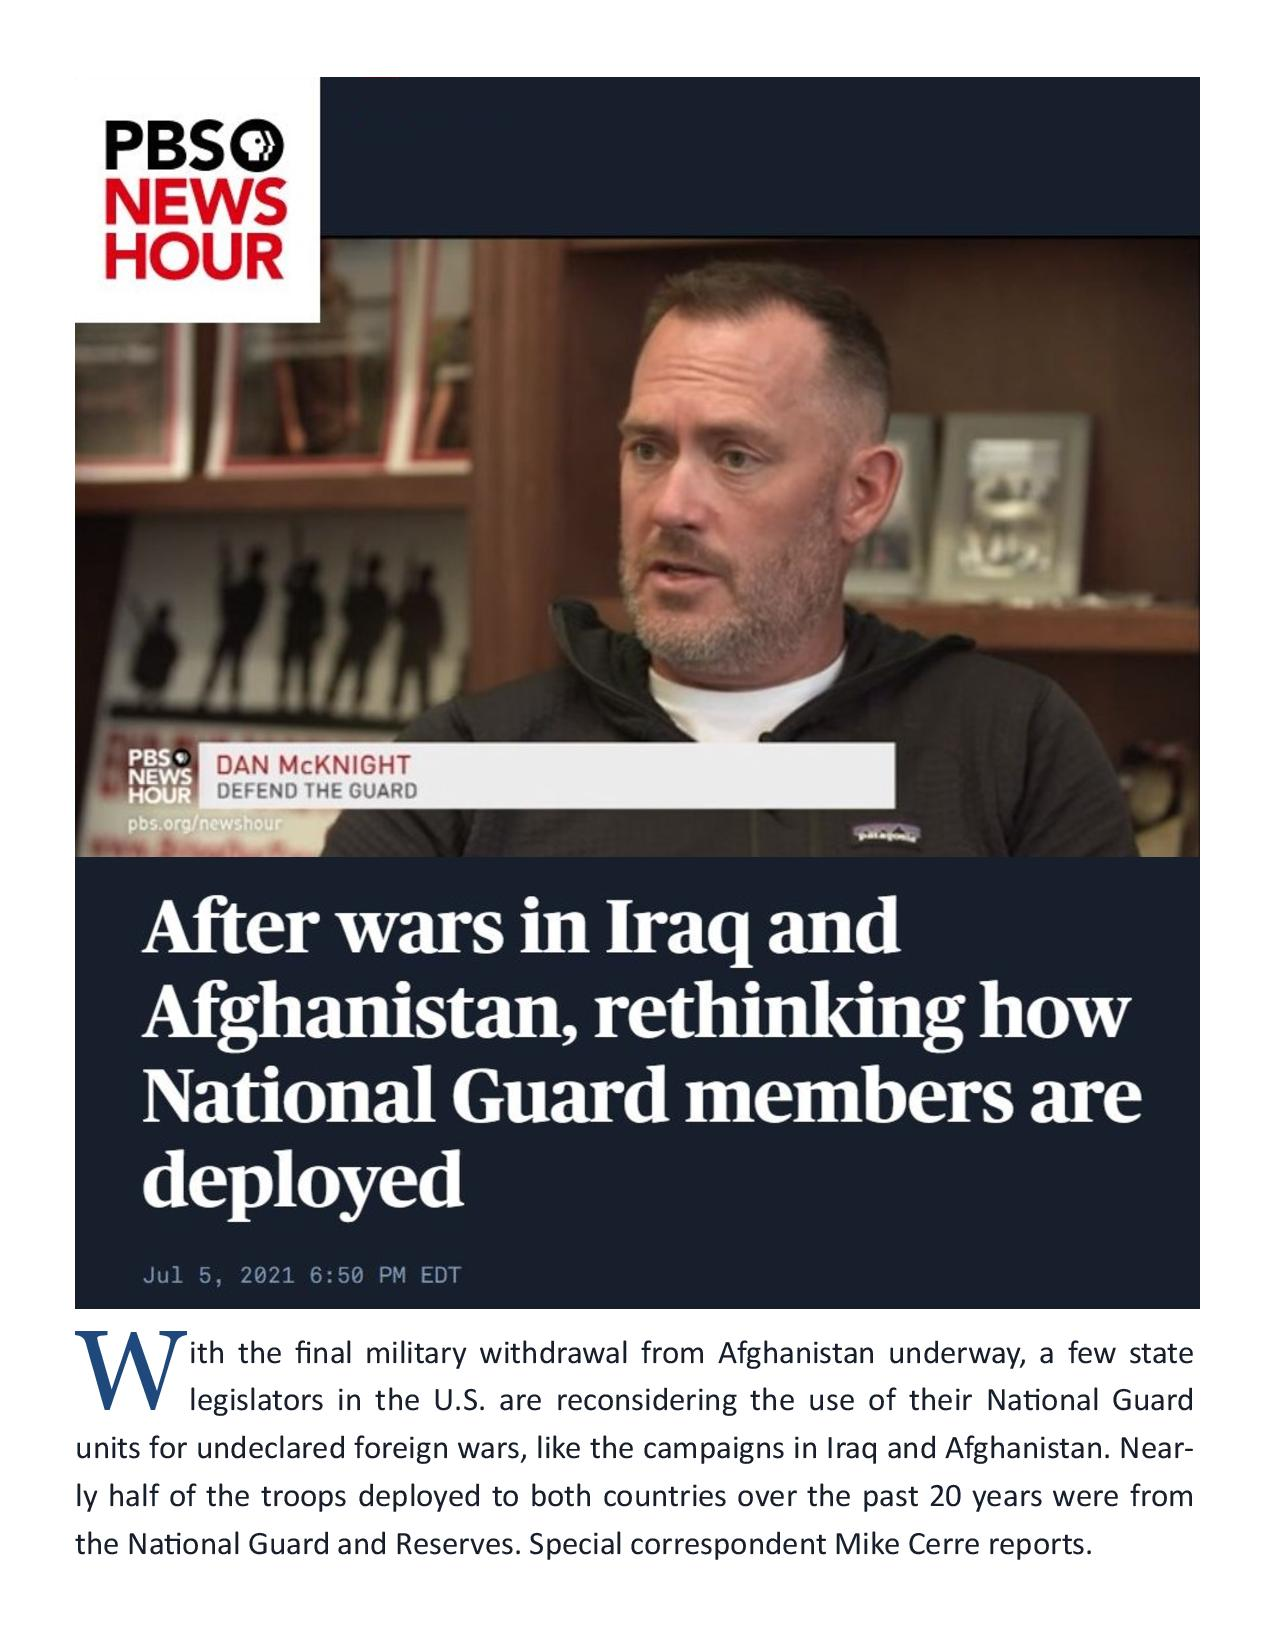 After Wars in Iraq and Afghanistan, Rethinking How National Guard Members Are Deployed